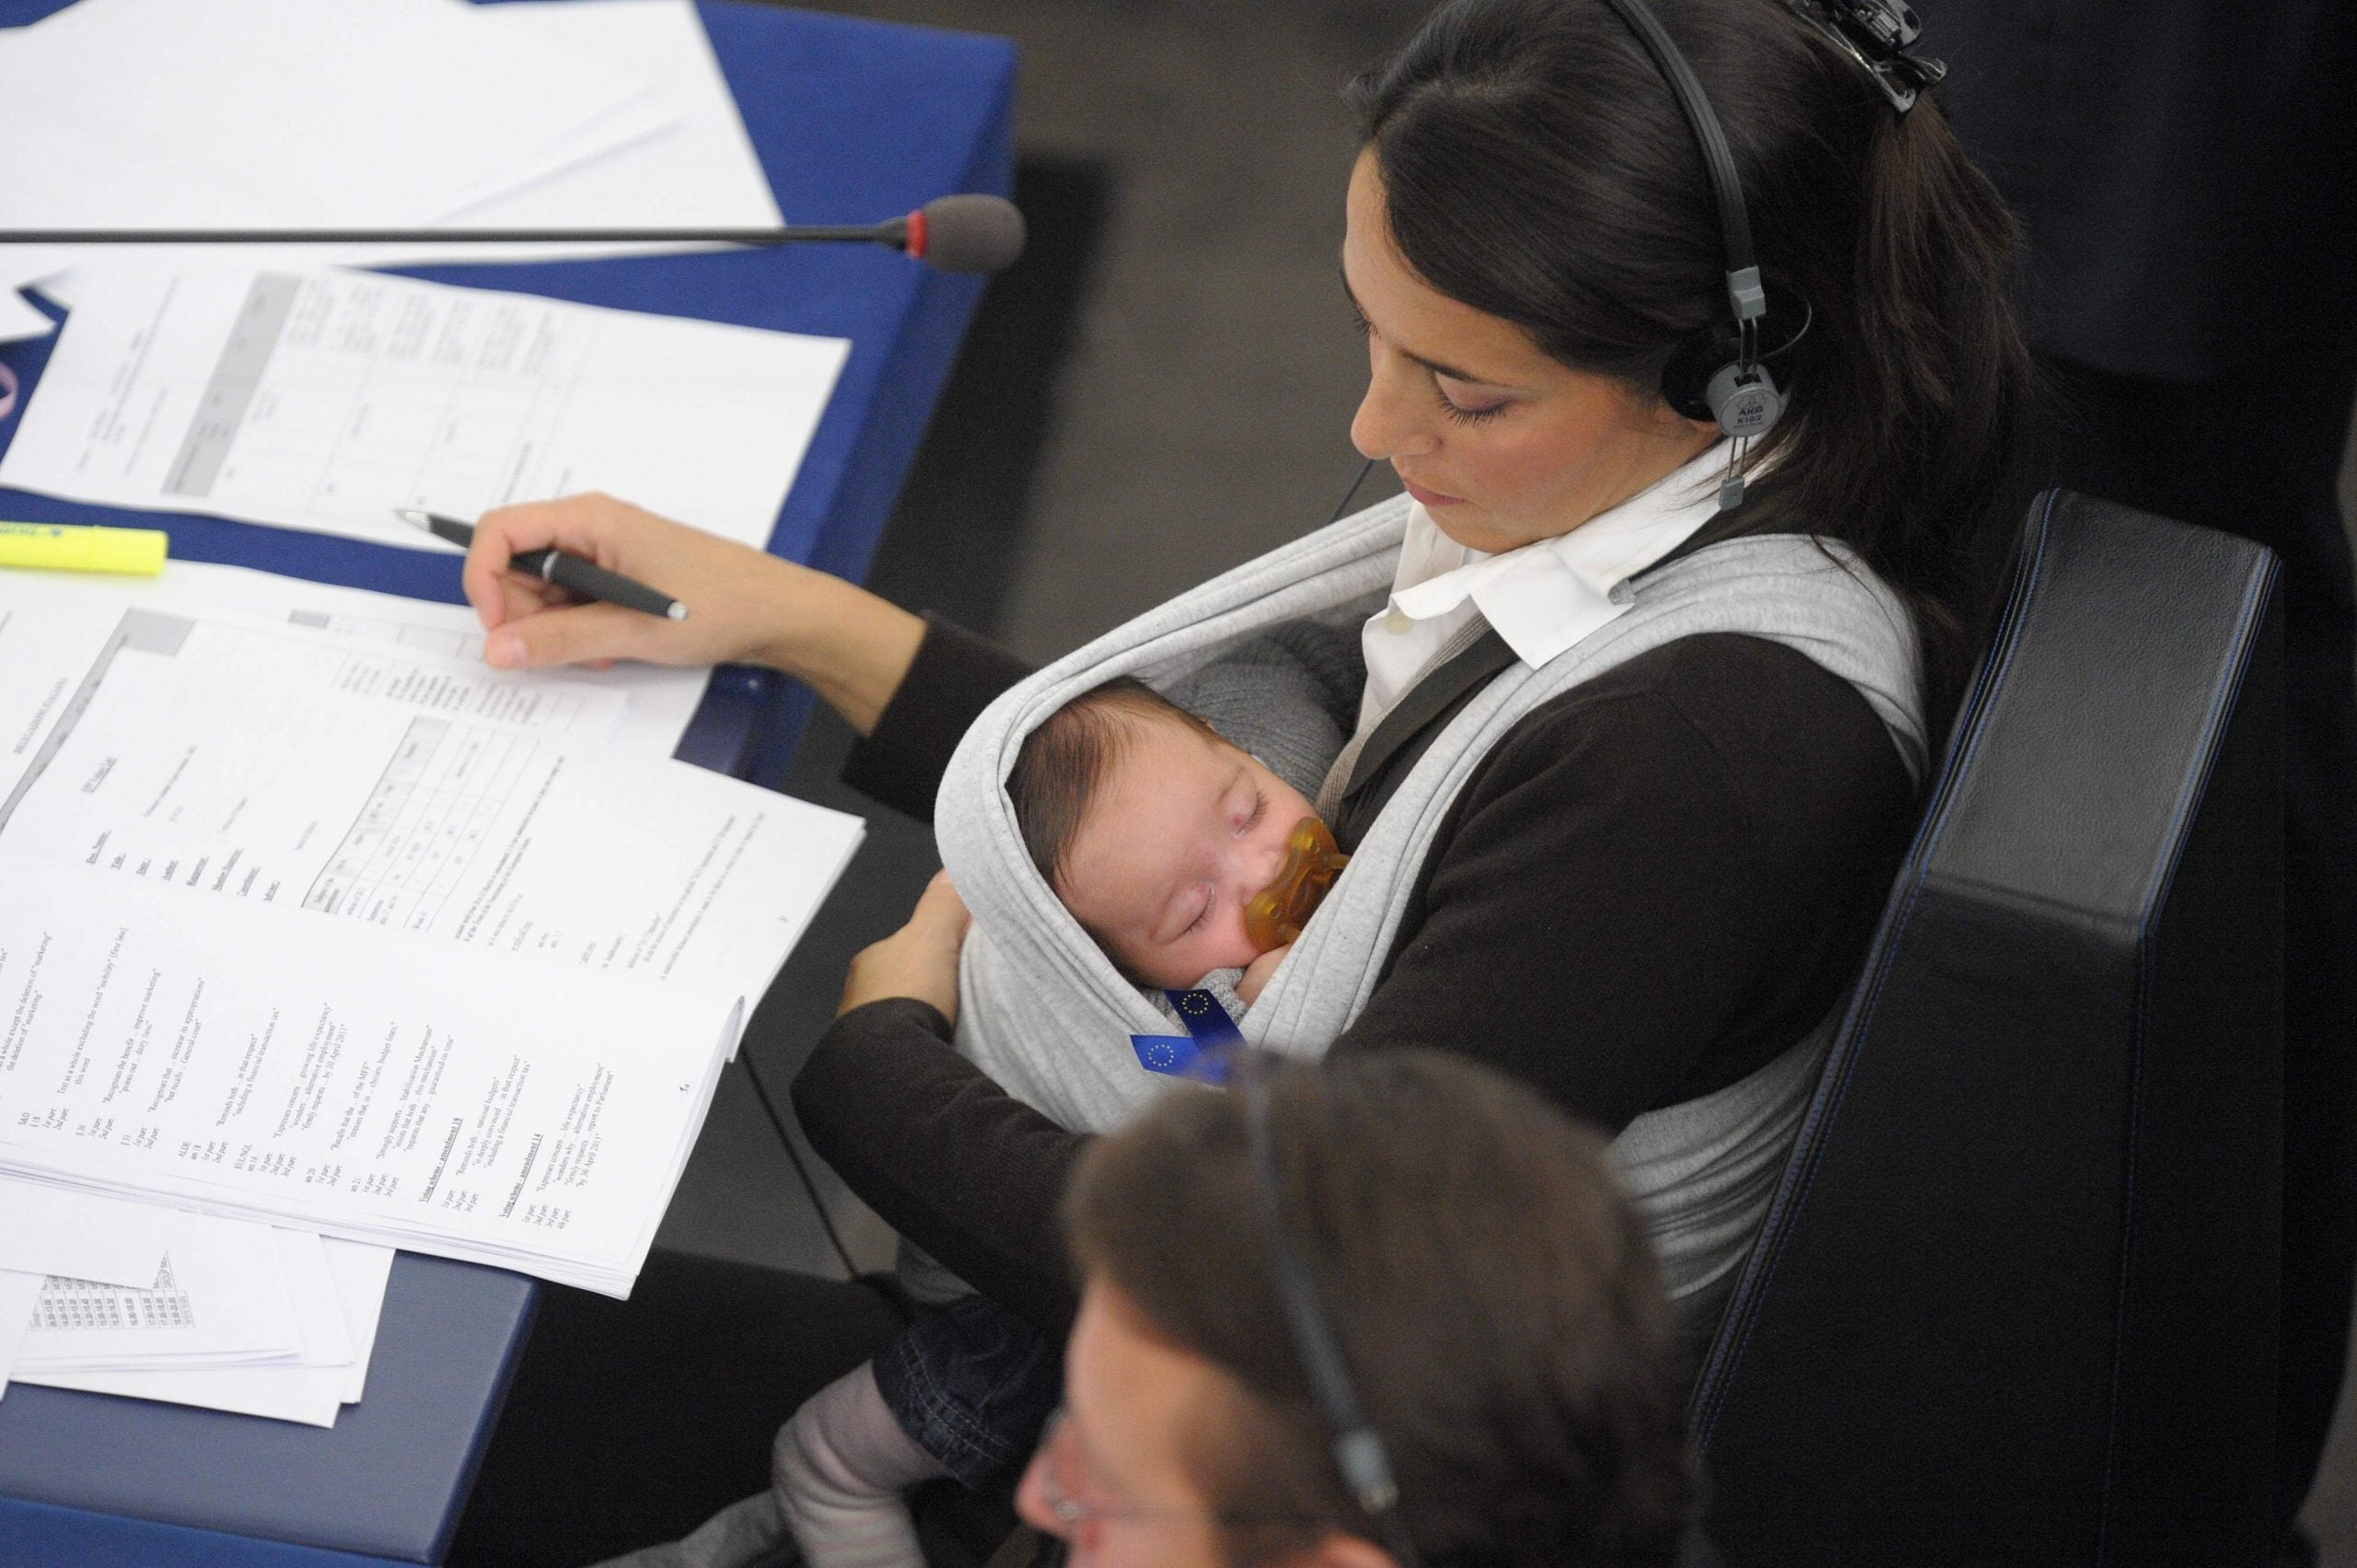 The legal loophole forcing pregnant women out of work